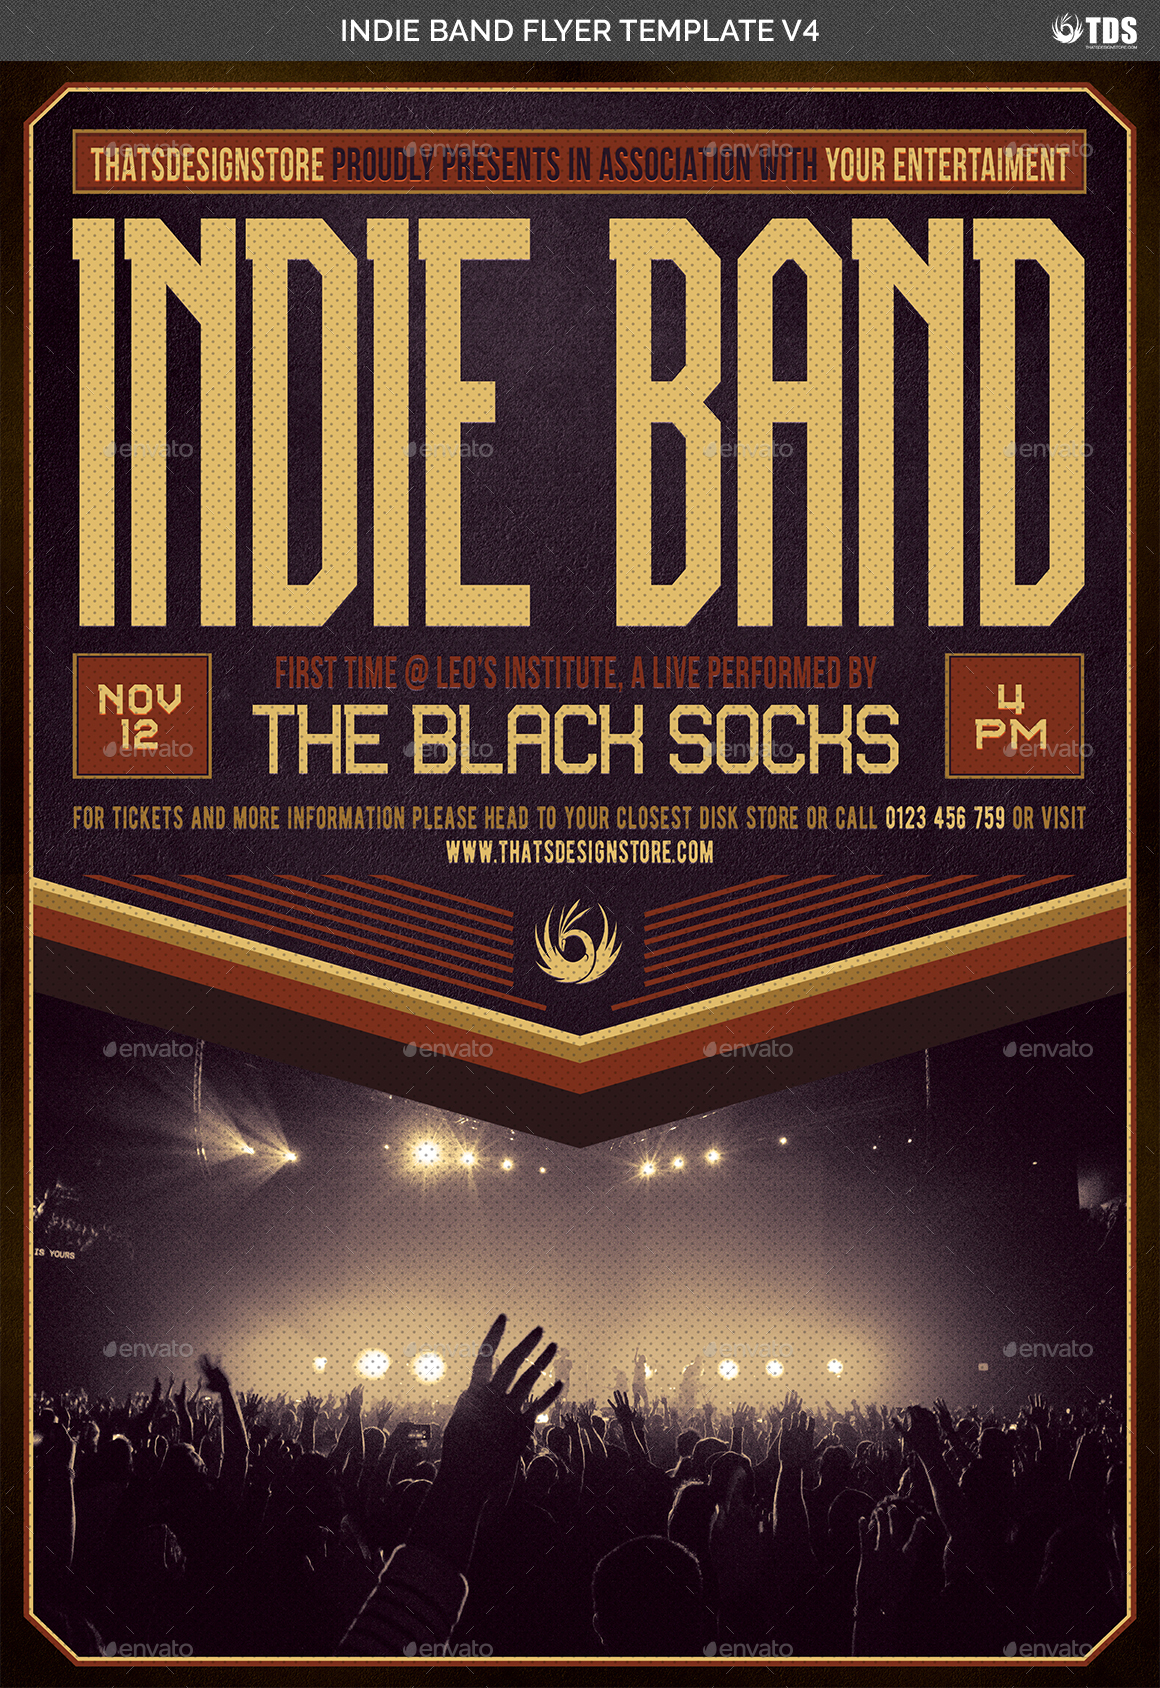 01_Indie Band Flyer Template V4 02_Indie Band Flyer Template V4  03_Indie Band Flyer Template V4 ...